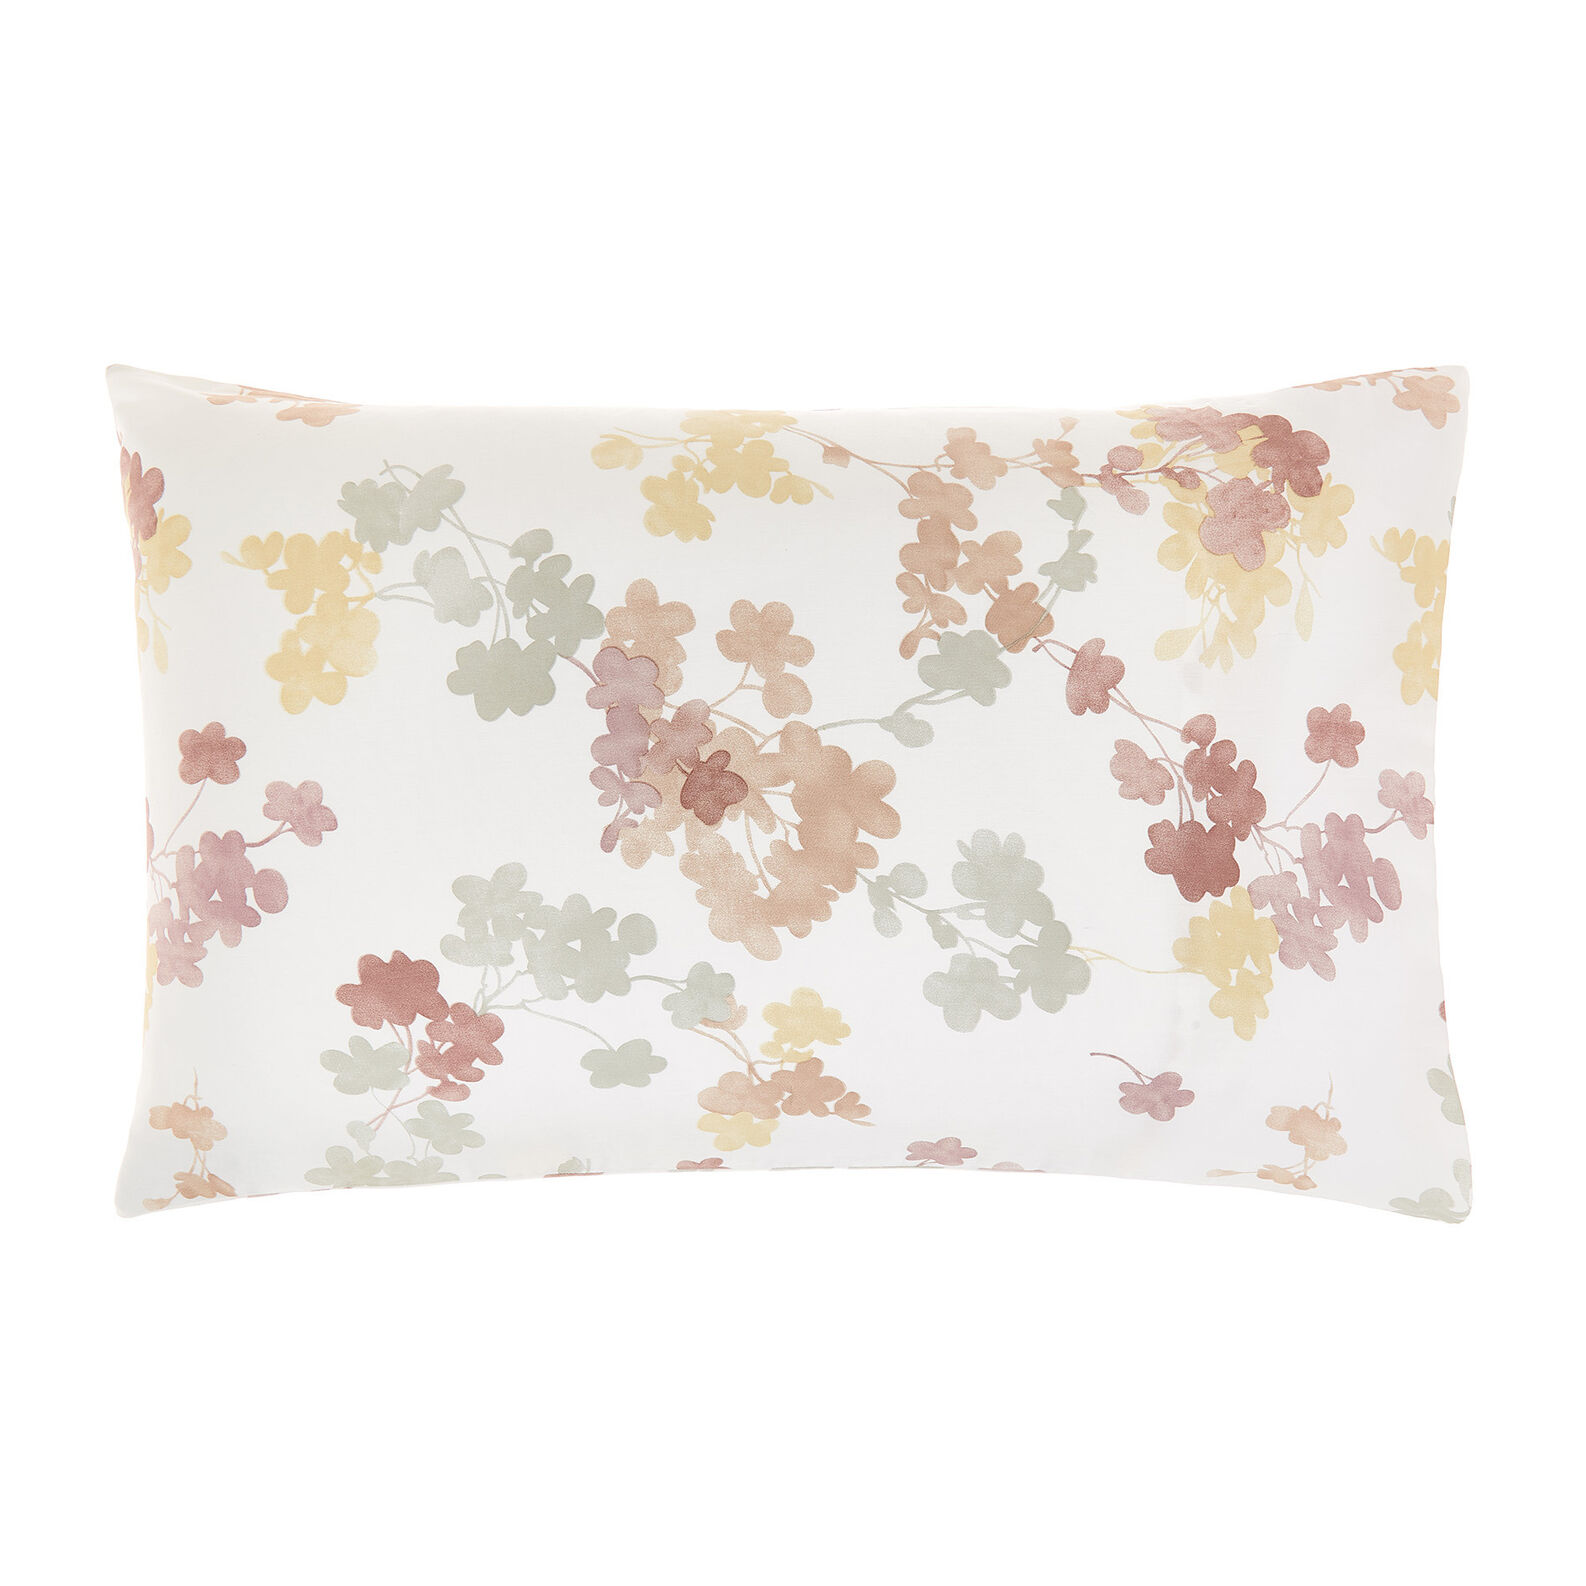 Cotton satin pillowcase with floral pattern